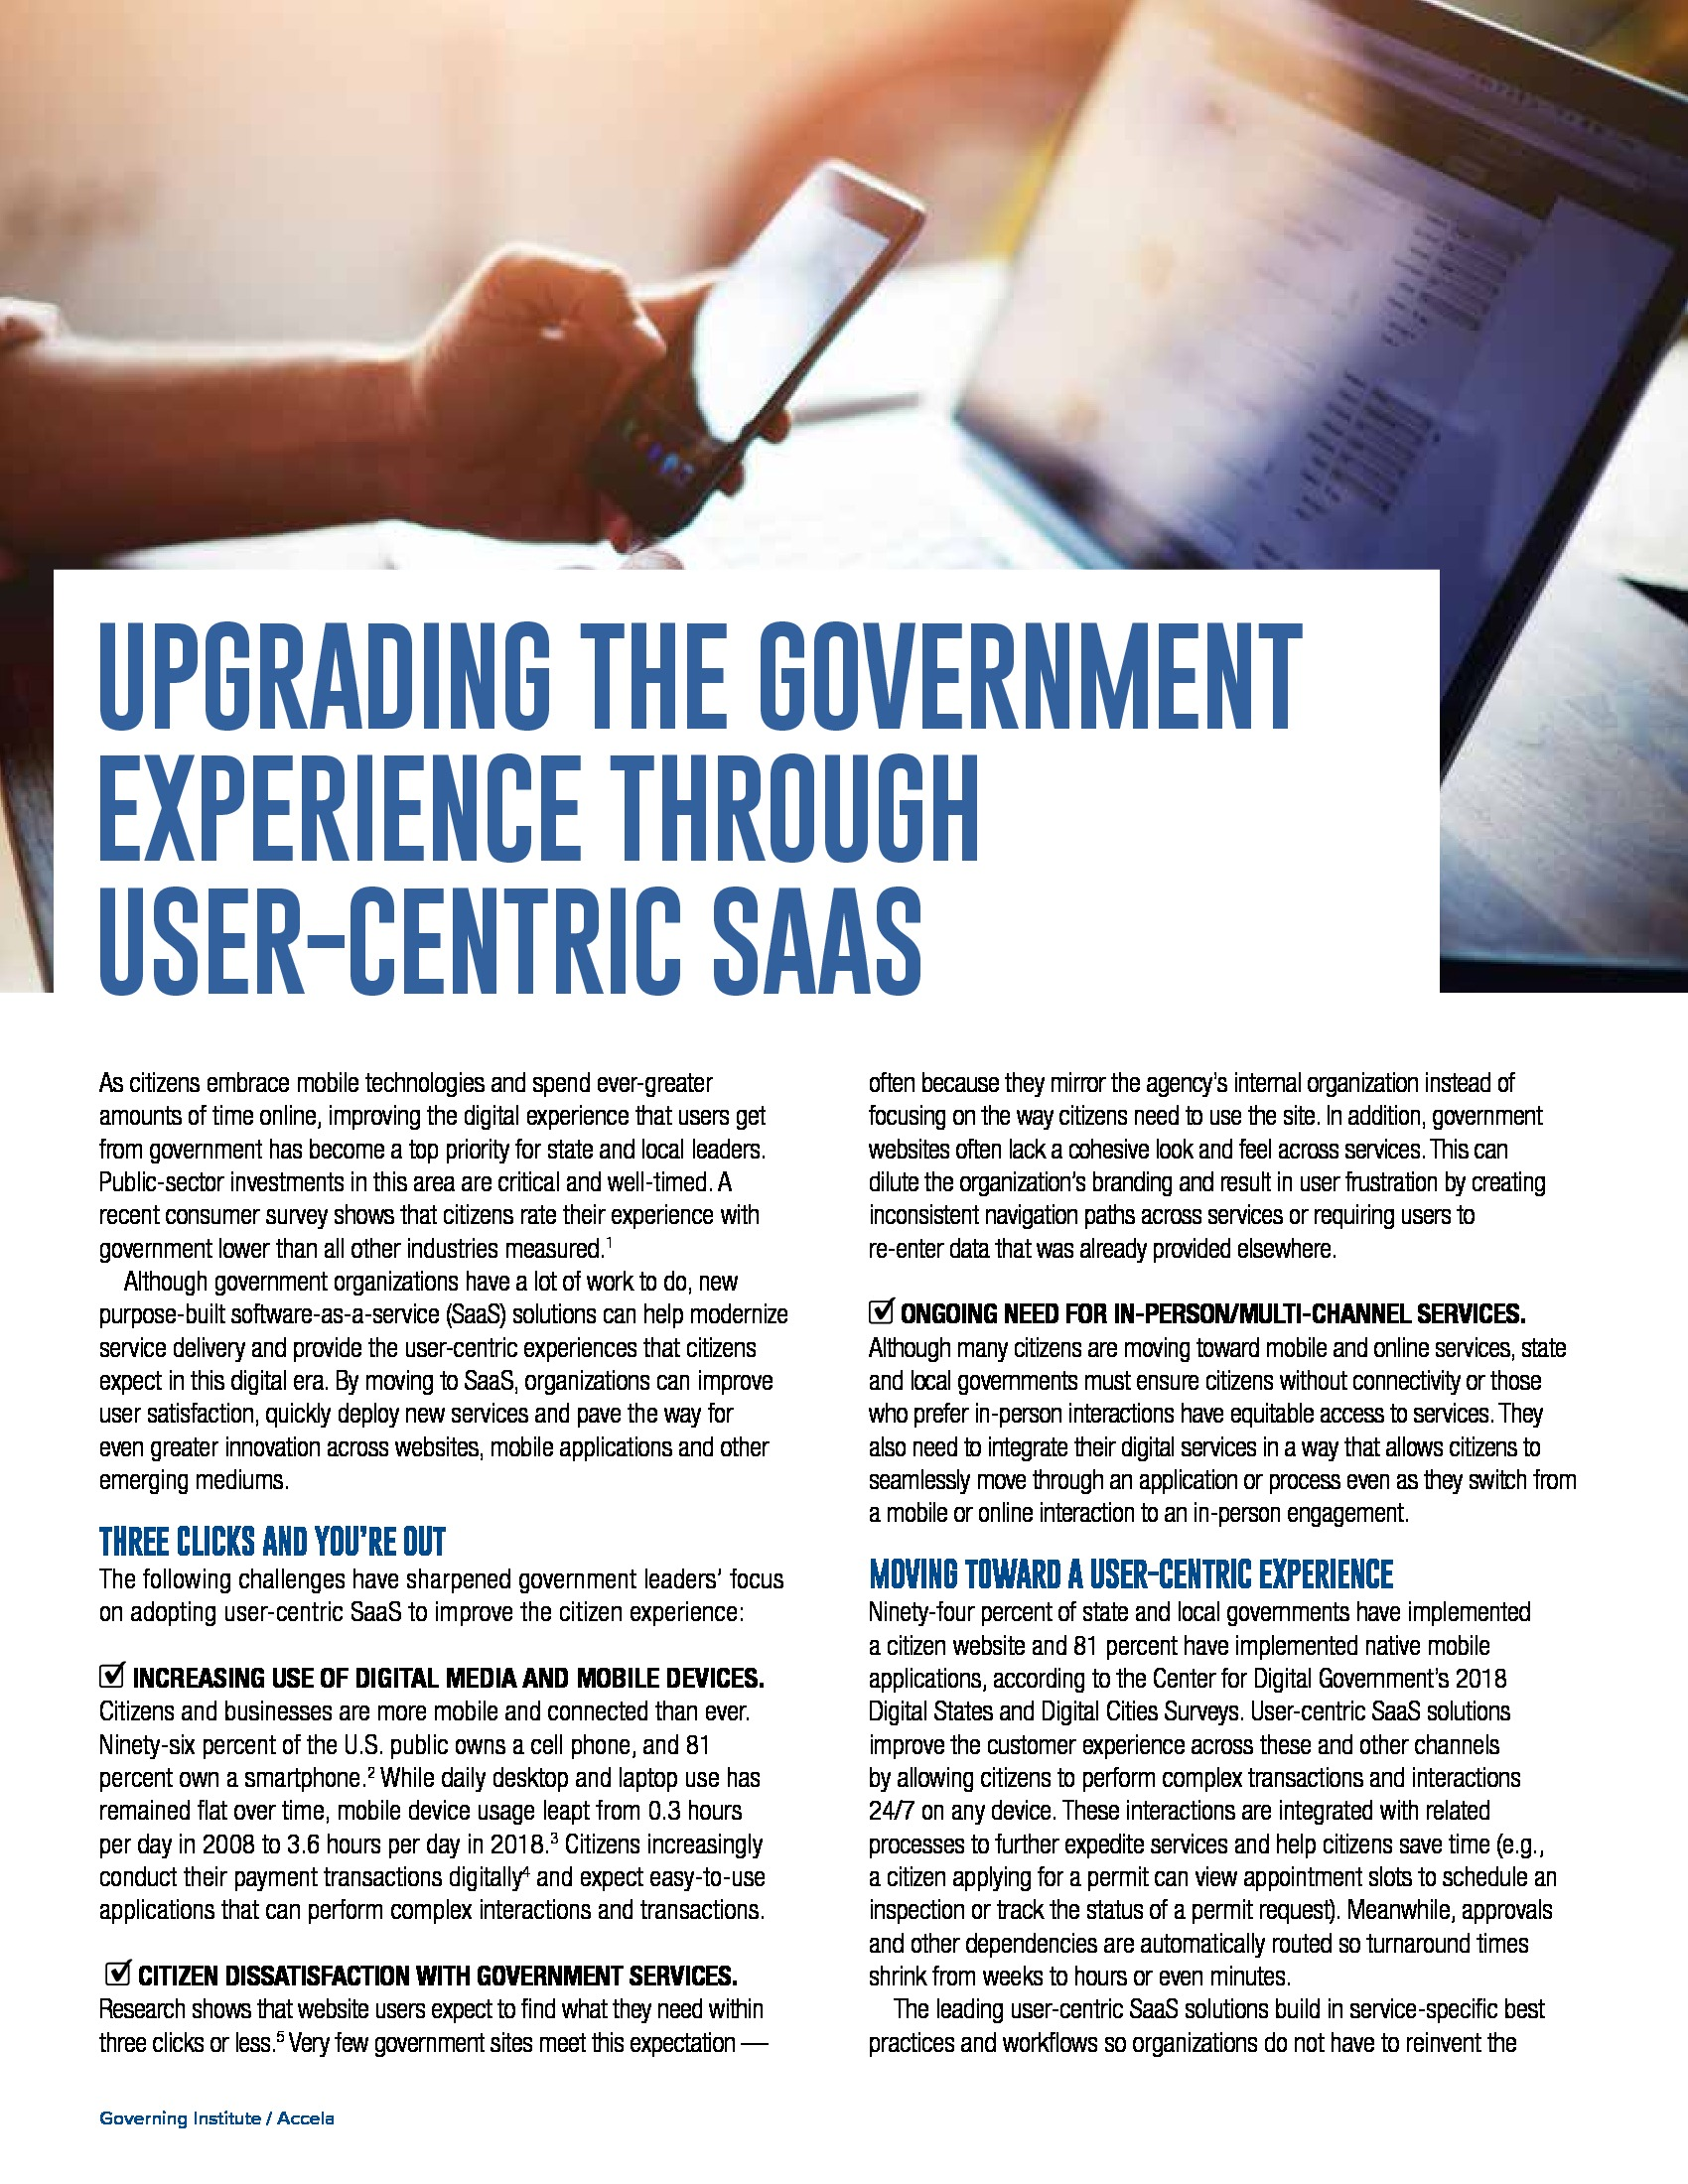 Upgrading the Government Through User-Centric SaaS